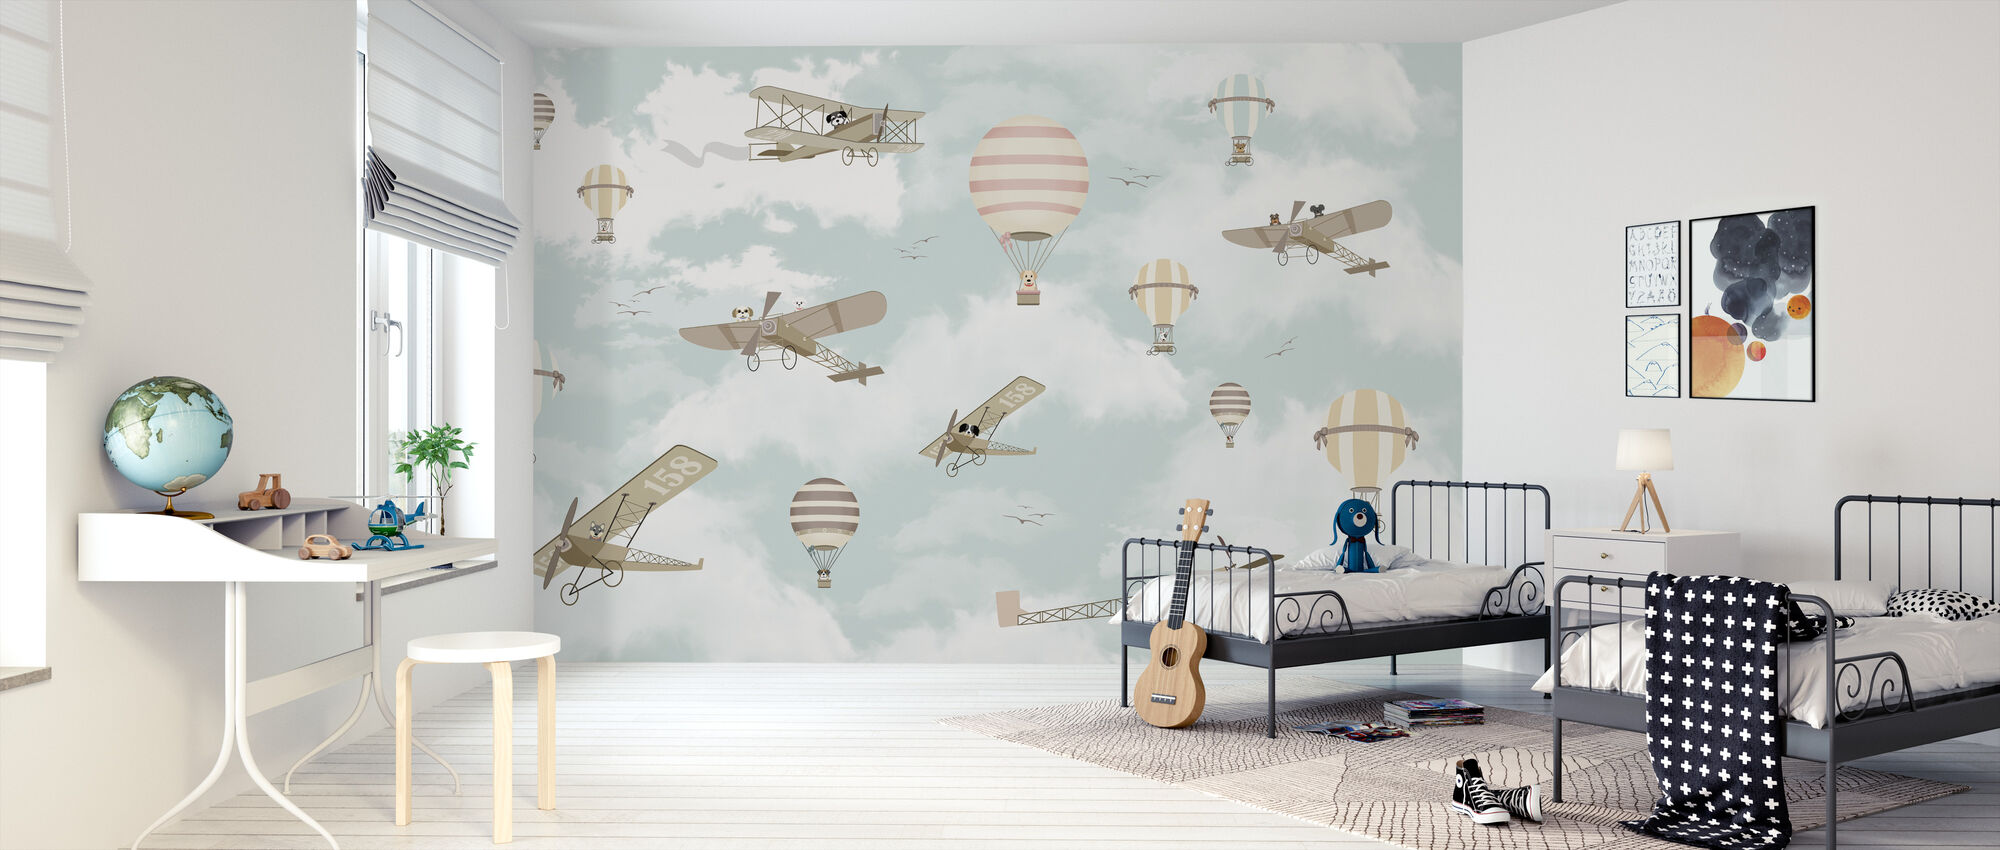 Lets fly Dog Friends - Wallpaper - Kids Room